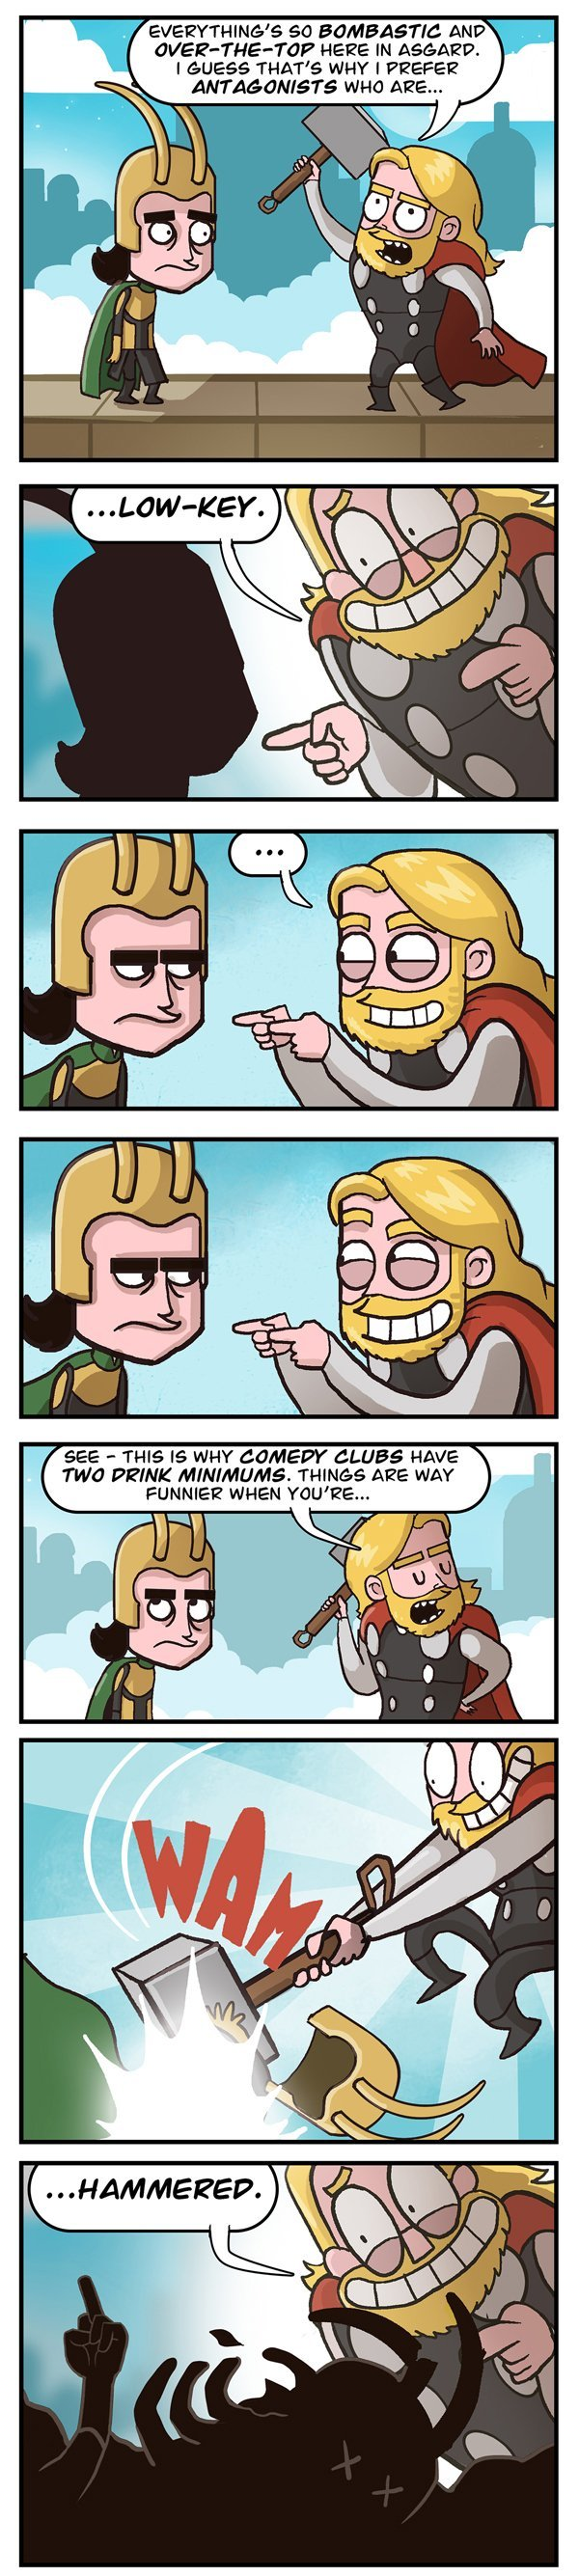 The Thor comedy club. It's simply smashing.. rau ANTAGONISTS WHIT ARE... TWO tani? tme MINIMUMS. THINGS WAY